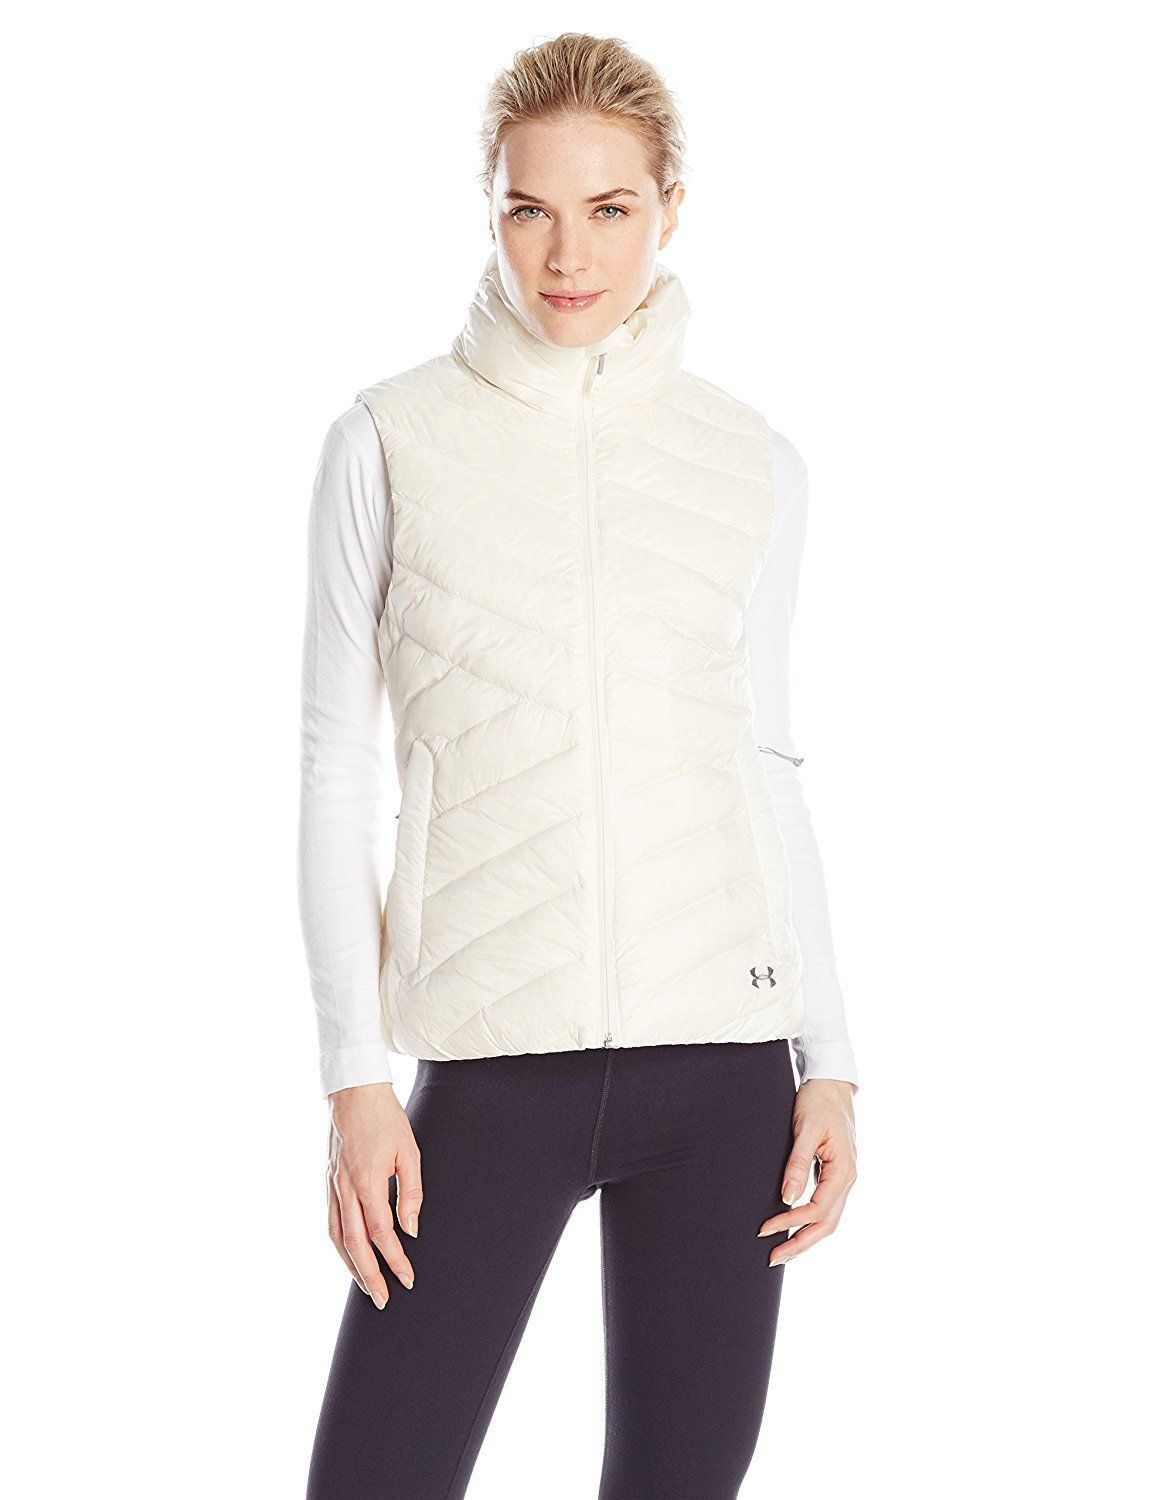 New Womens Under Armour Vest L White Down Warm Puff Infrared Storm NWT Water Res image 2